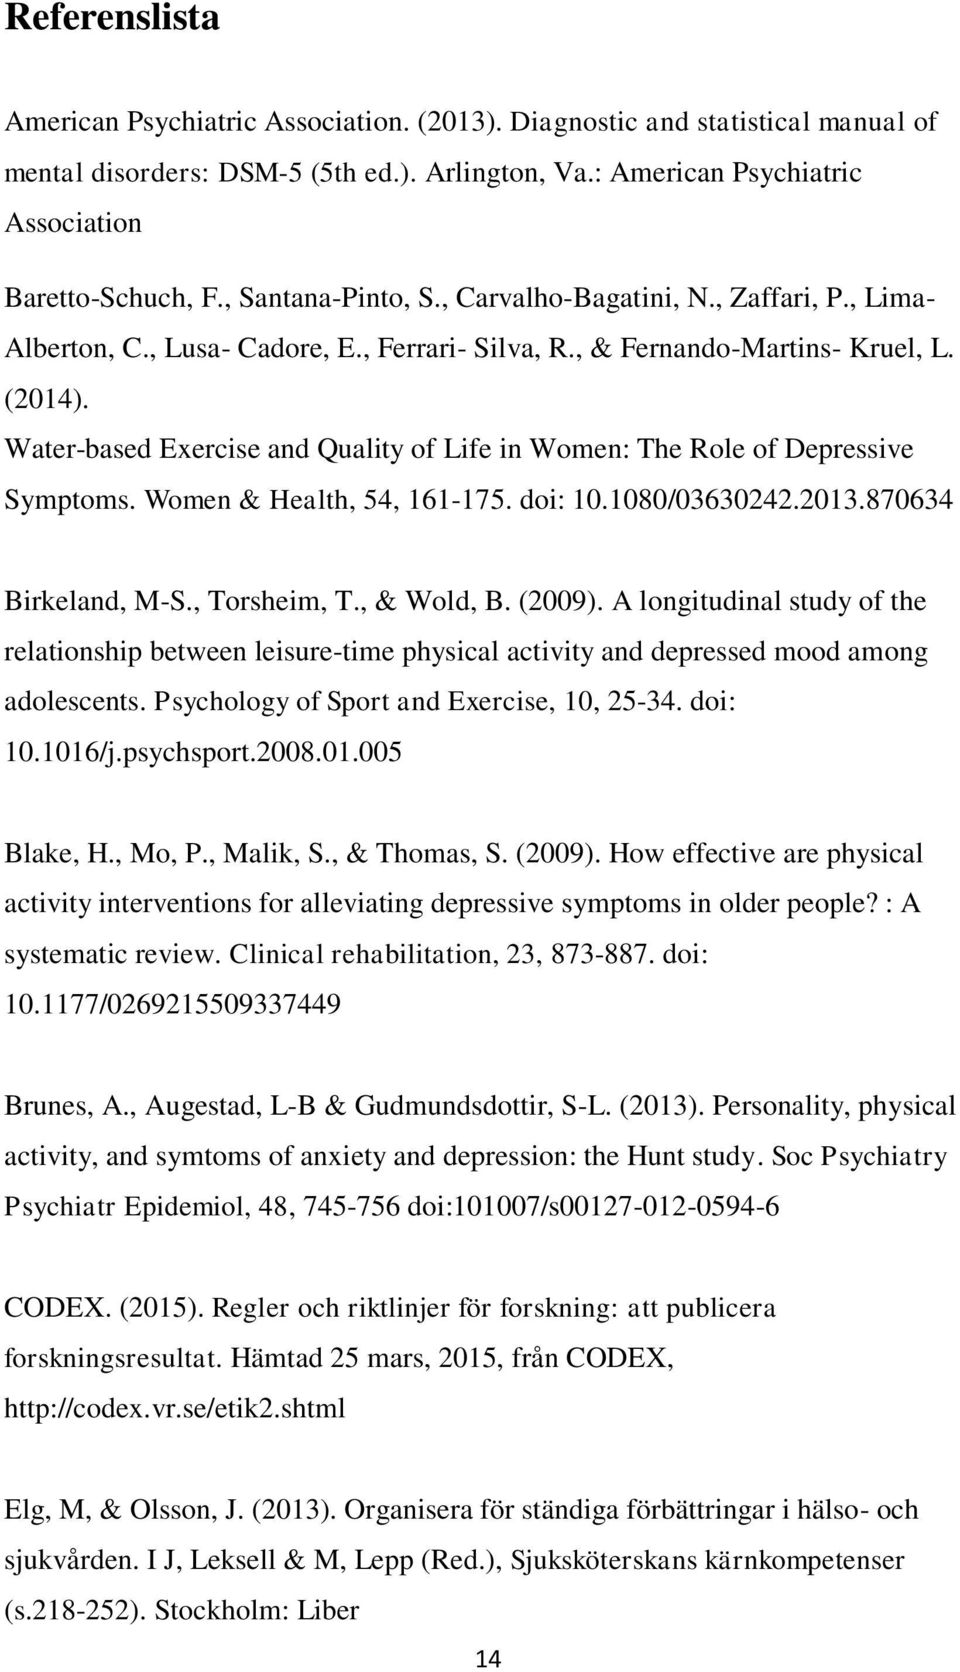 Water-based Exercise and Quality of Life in Women: The Role of Depressive Symptoms. Women & Health, 54, 161-175. doi: 10.1080/03630242.2013.870634 Birkeland, M-S., Torsheim, T., & Wold, B. (2009).